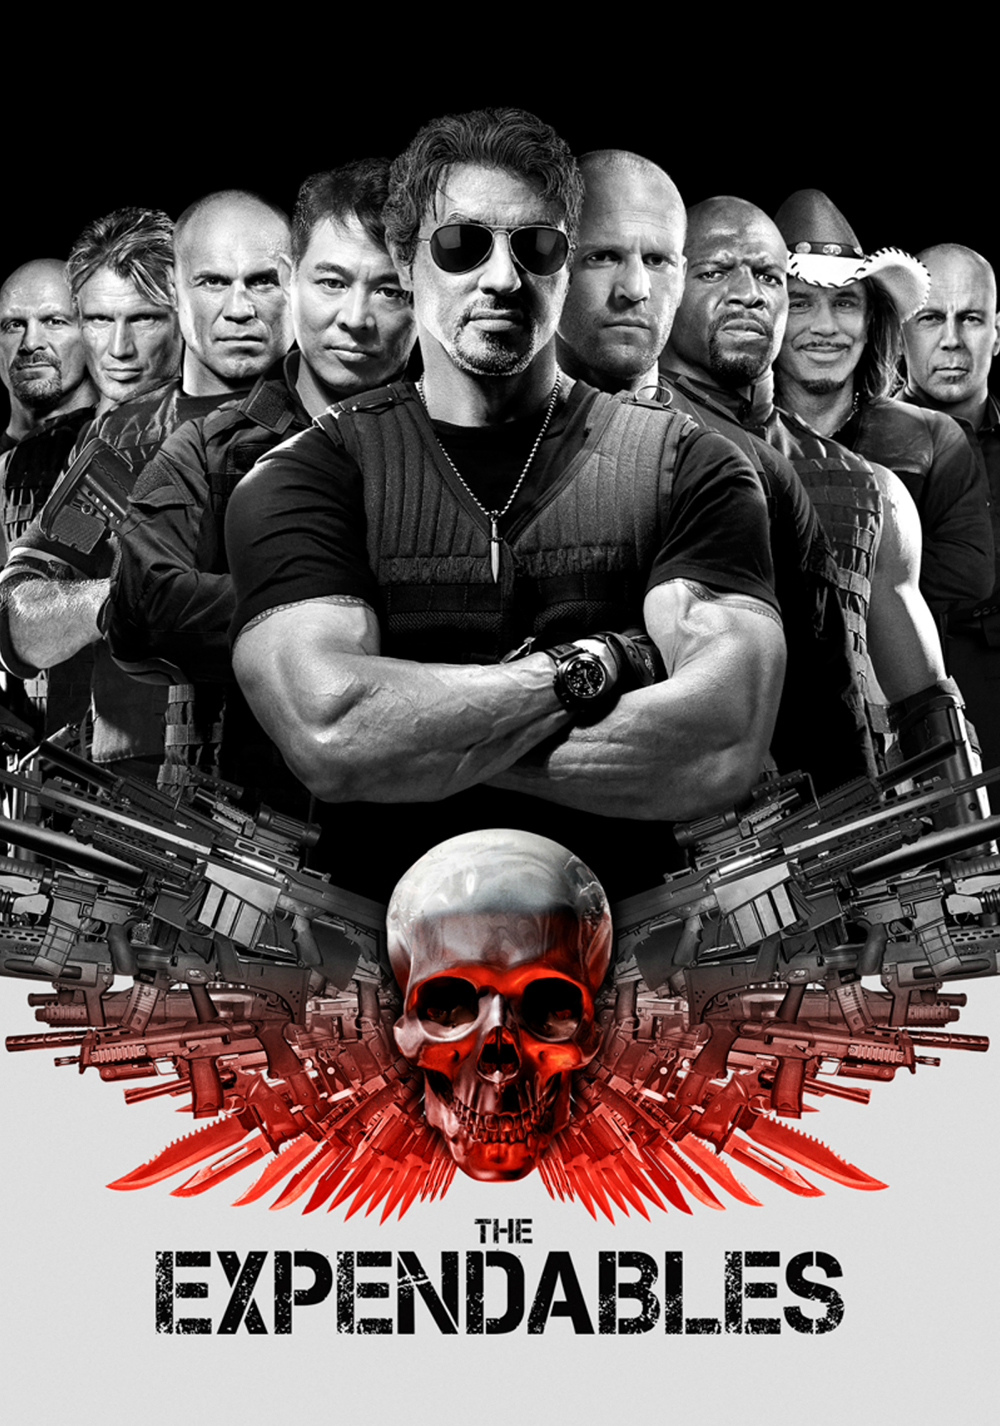 GC5MYV3 The Expendable...